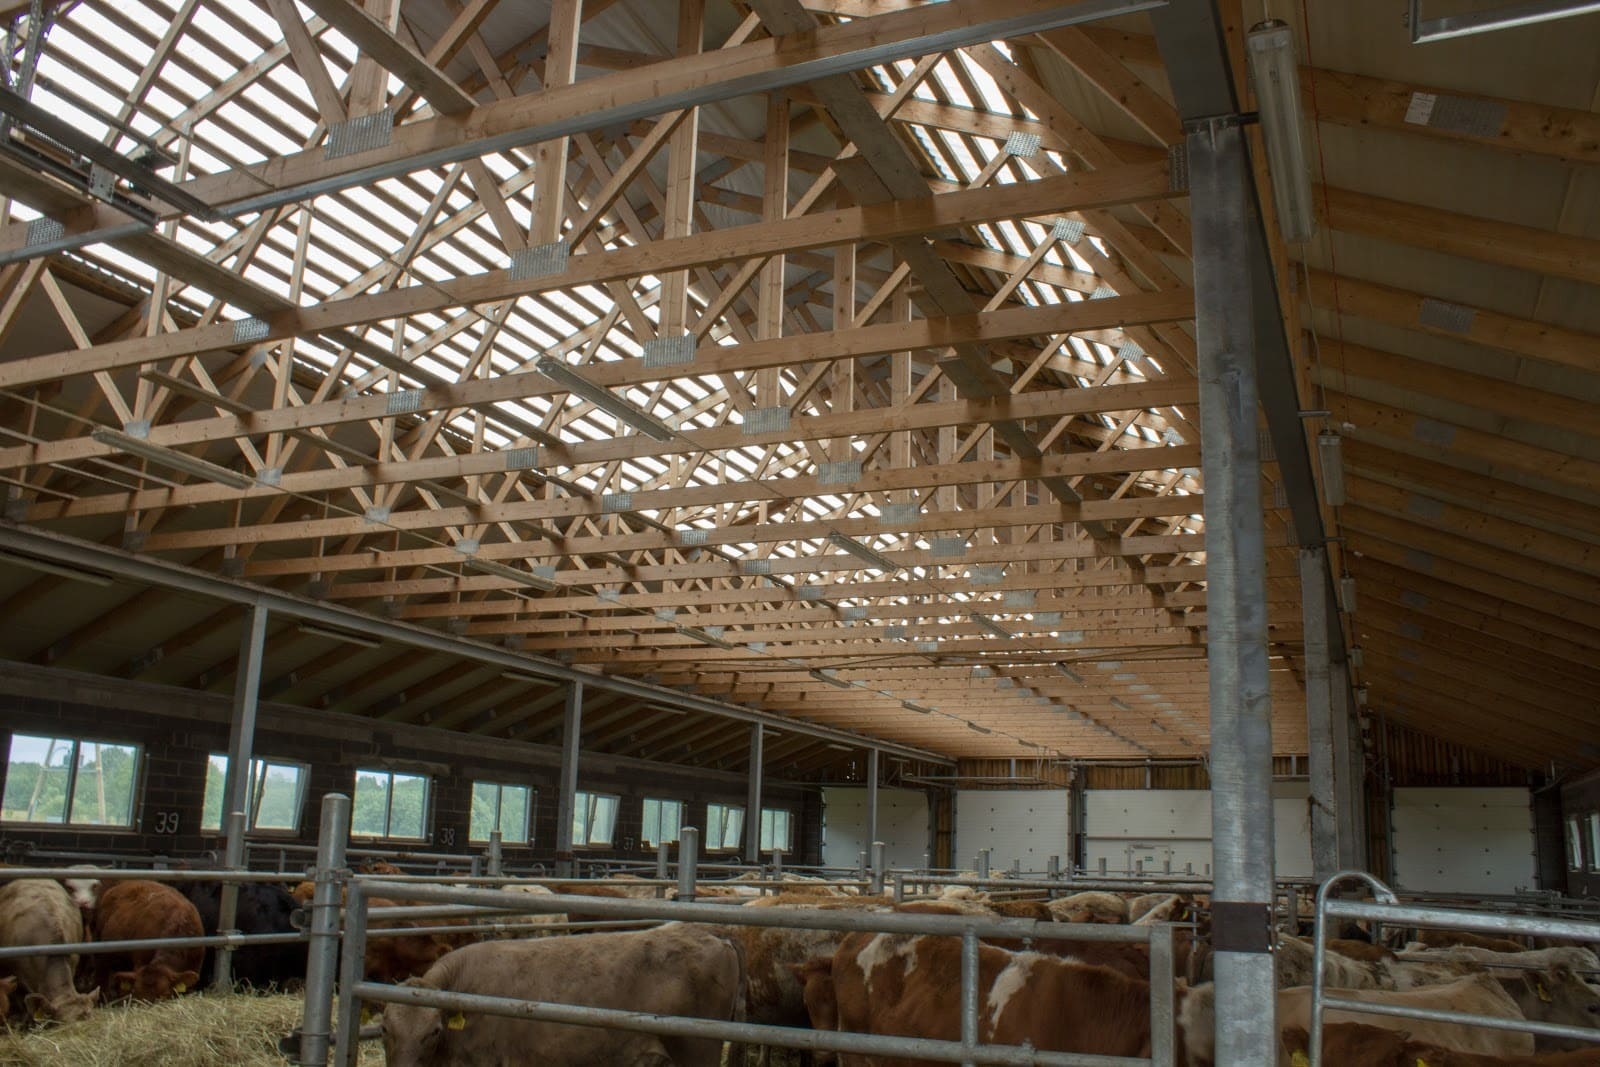 Roof constructions for a rural farm